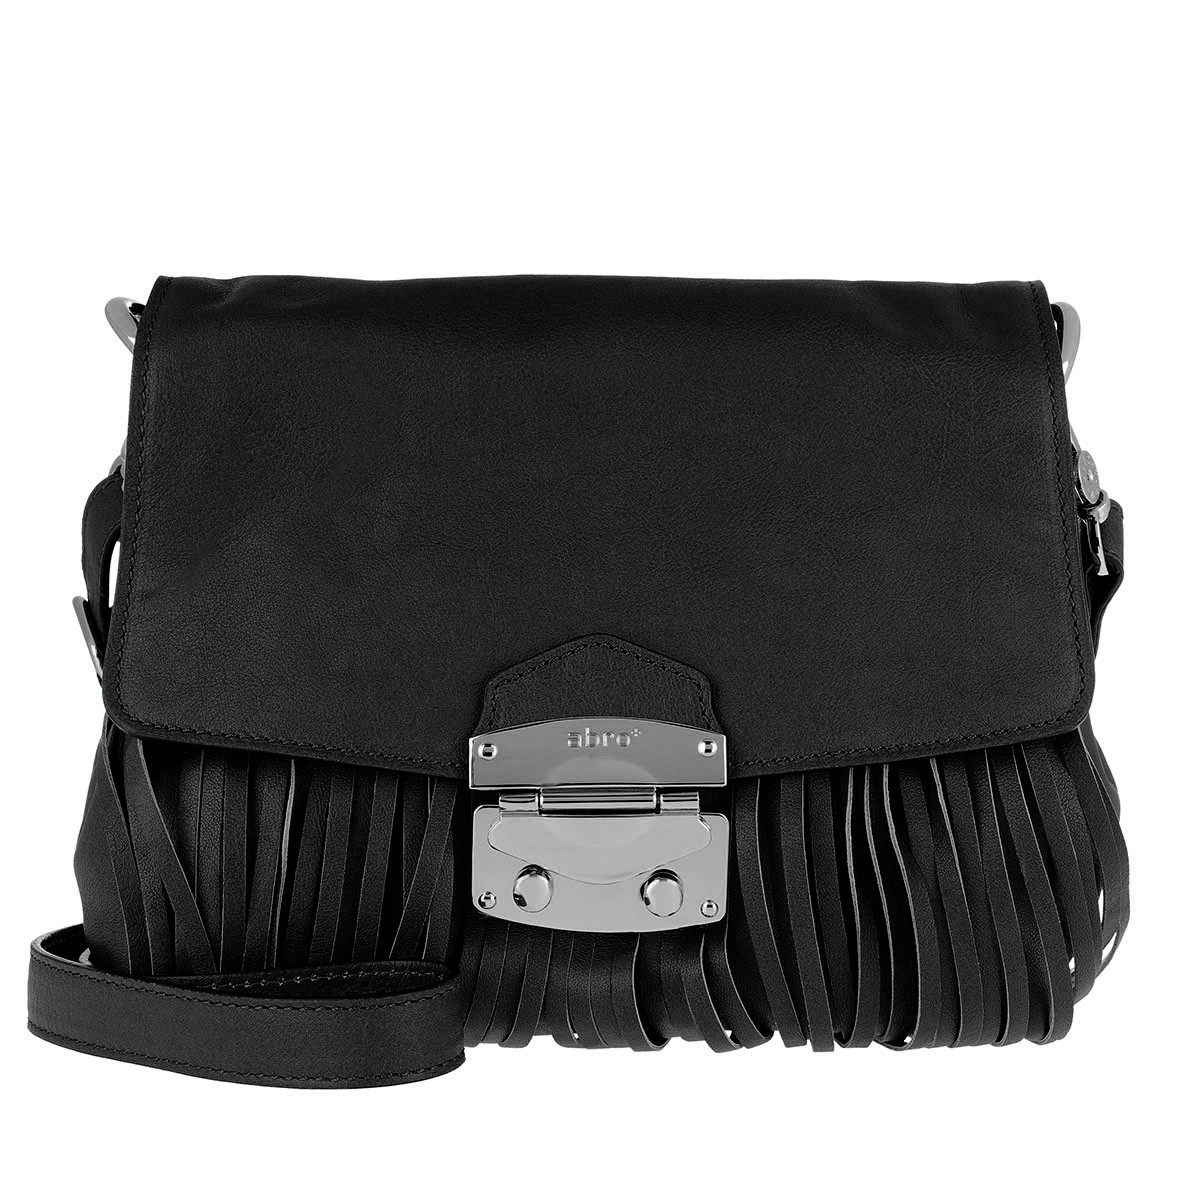 Abro Satchel Bag - Manolete Shoulder Bag Black/Nickel - in schwarz - für Damen